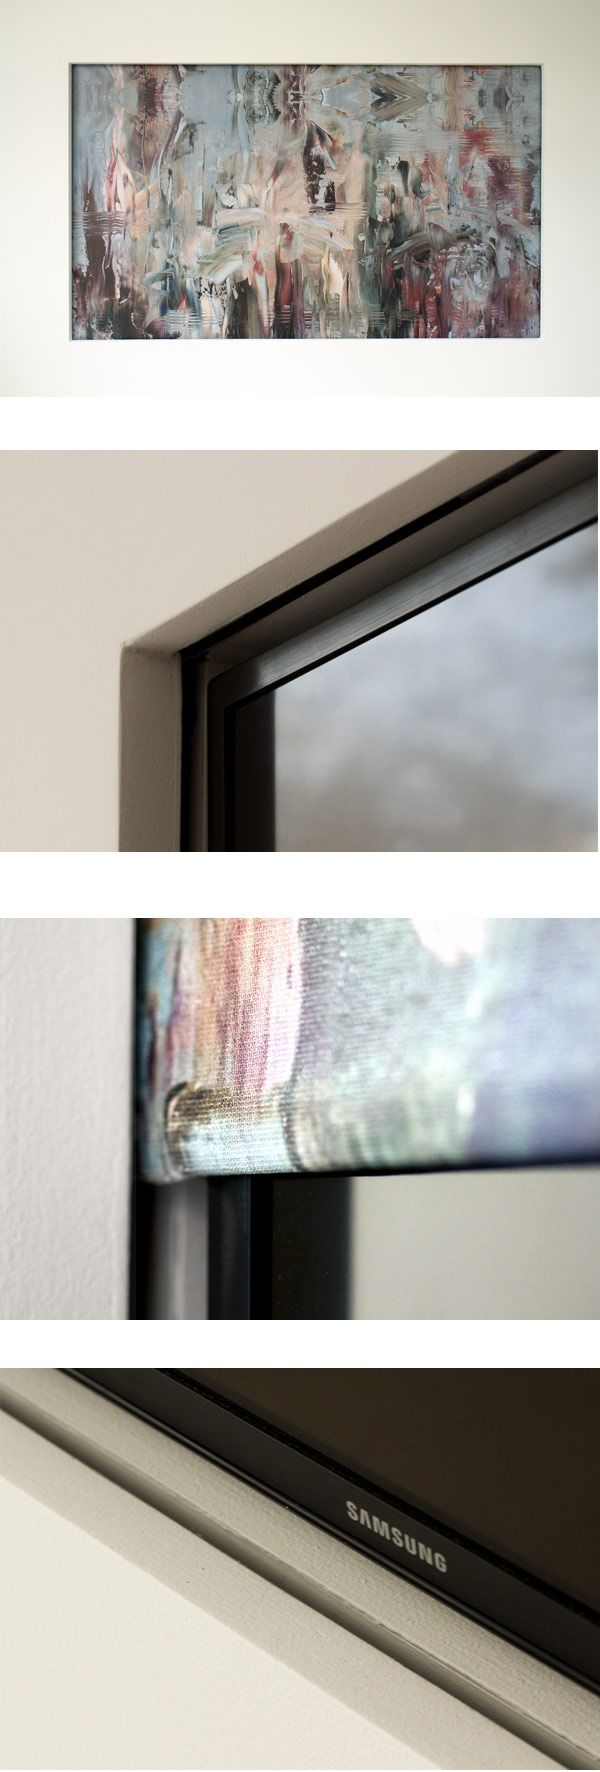 Hidden TV Behind Electric Roller Blind . . . Hidden TV, Hide TV, Hiding TV, Recessed TV, Concealed TV, Hidden Screen, Hide Screen, Hiding Schreen, Concealed Screen, Recessed Screen